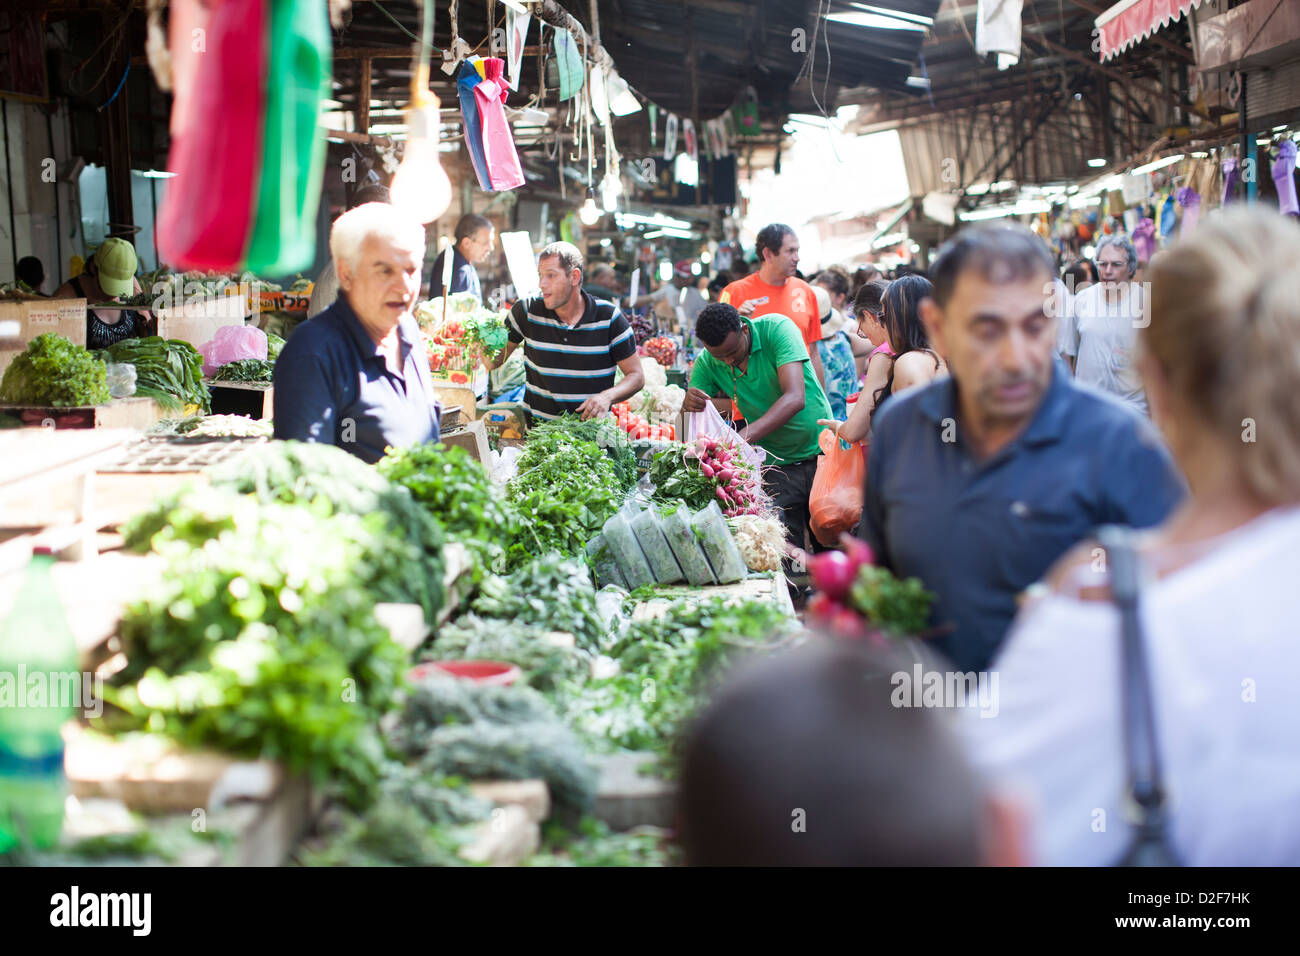 Market stall owners serve customers in the main market in Tel Aviv, Israel, on the day before Shabbat, the Jewish - Stock Image